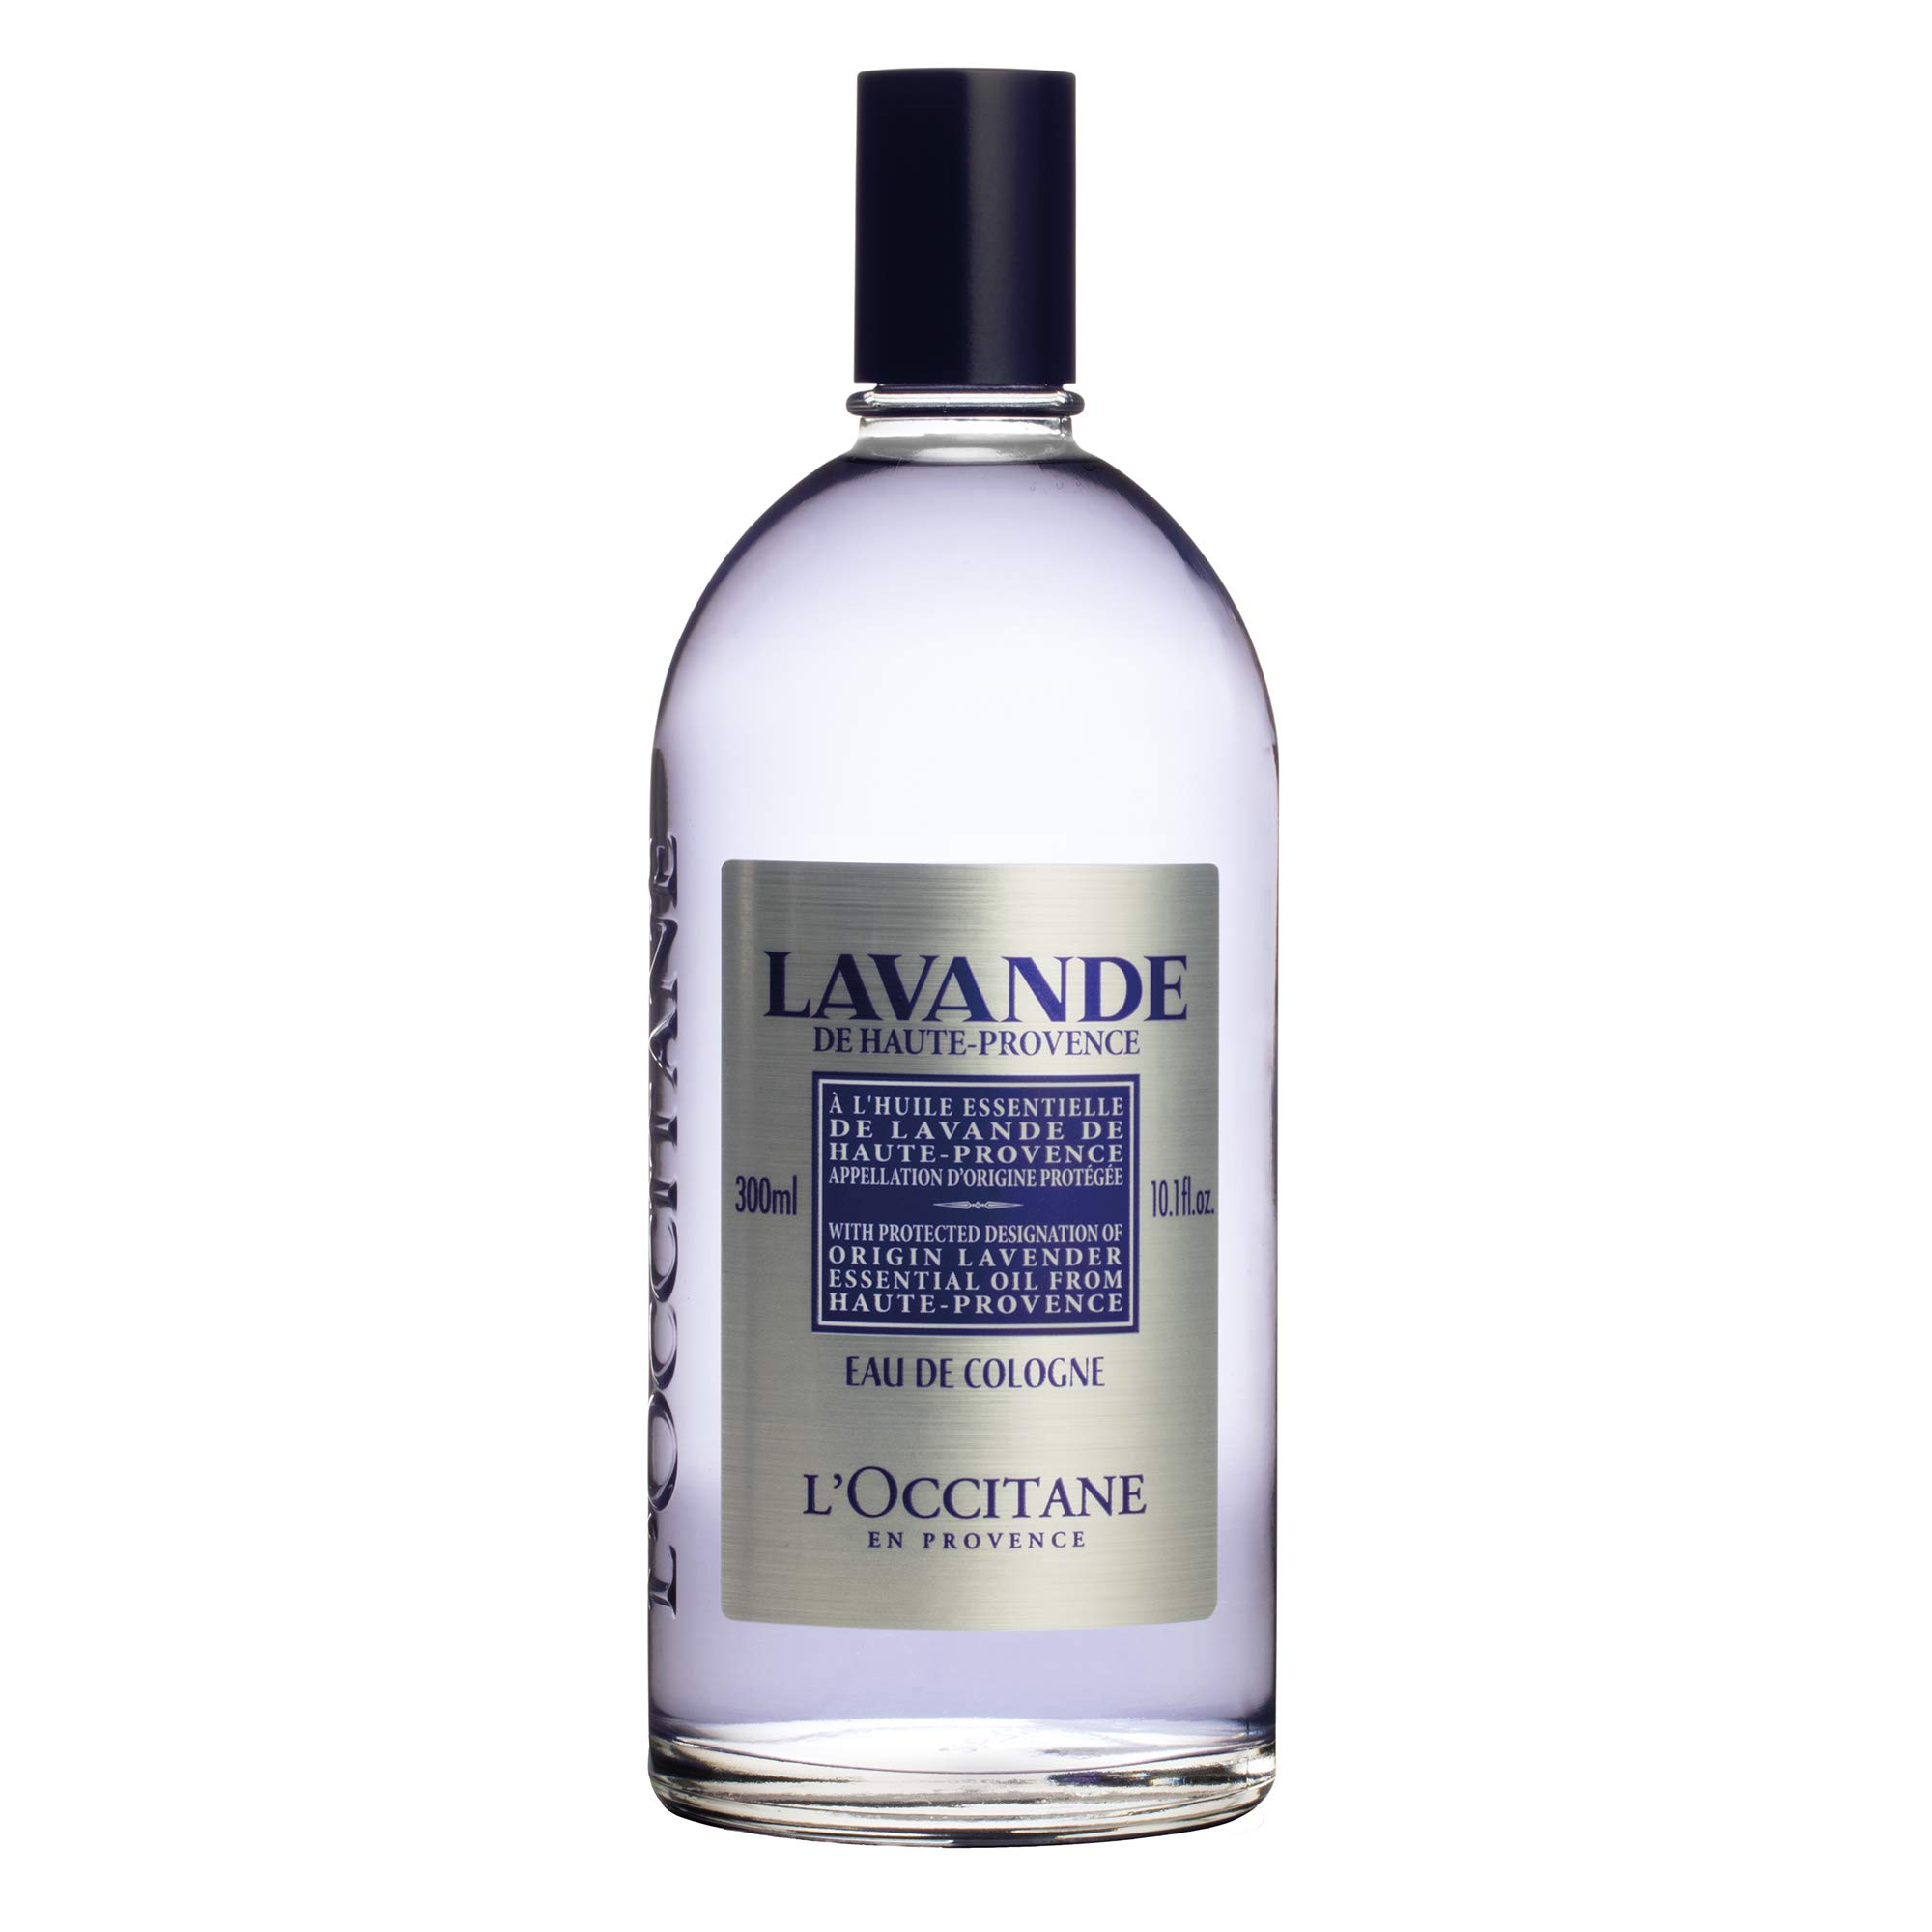 L'Occitane Lavender Eau de Cologne Enriched with Lavender Essential Oil, 10.1 fl. oz